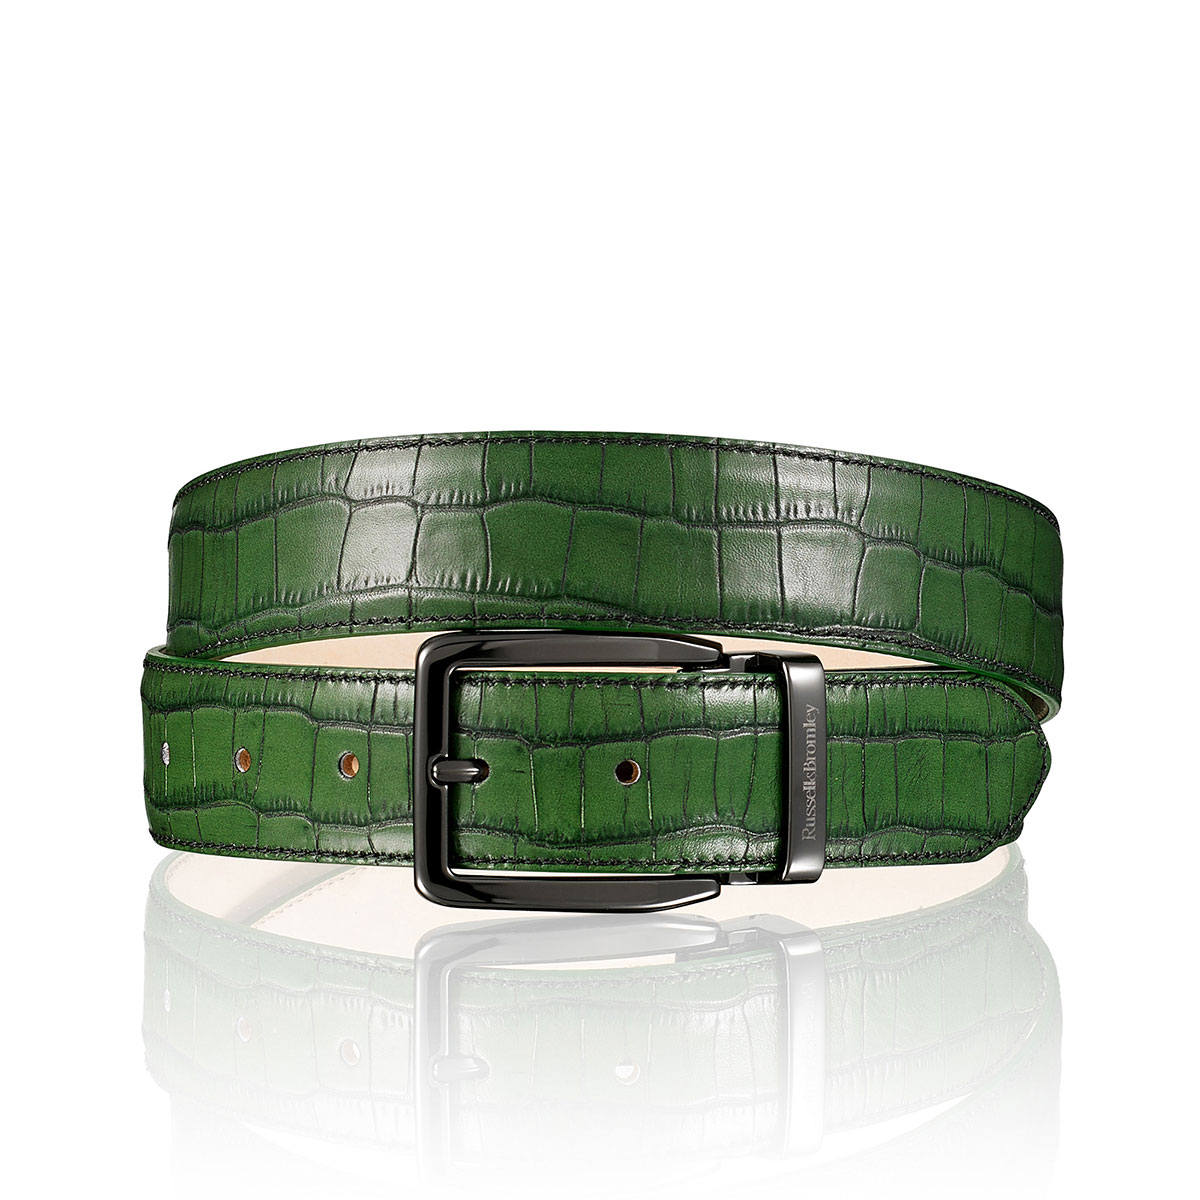 Russell And Bromley TANGO Classic Buckle Belt